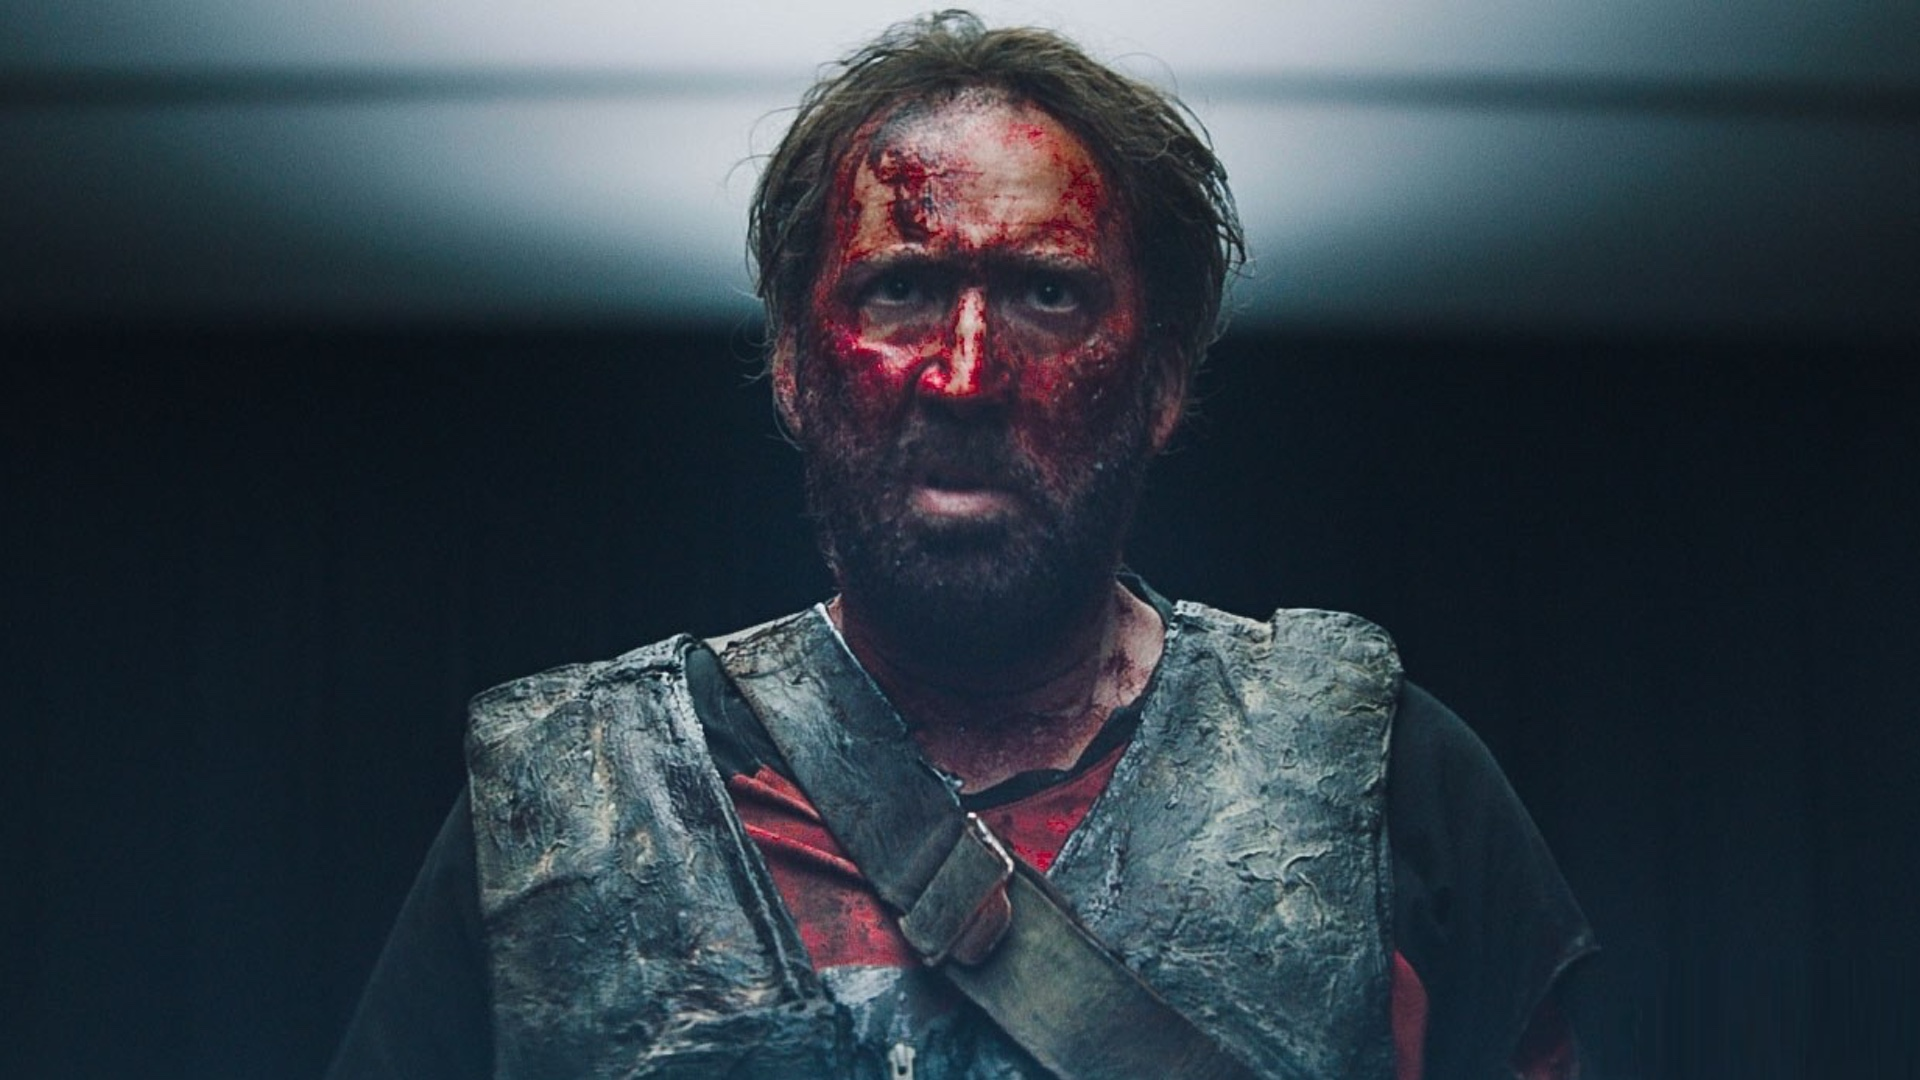 nicolas-cage-to-star-in-the-supernatural-post-apocalyptic-action-thriller-prisoners-of-the-ghostland-social.jpg